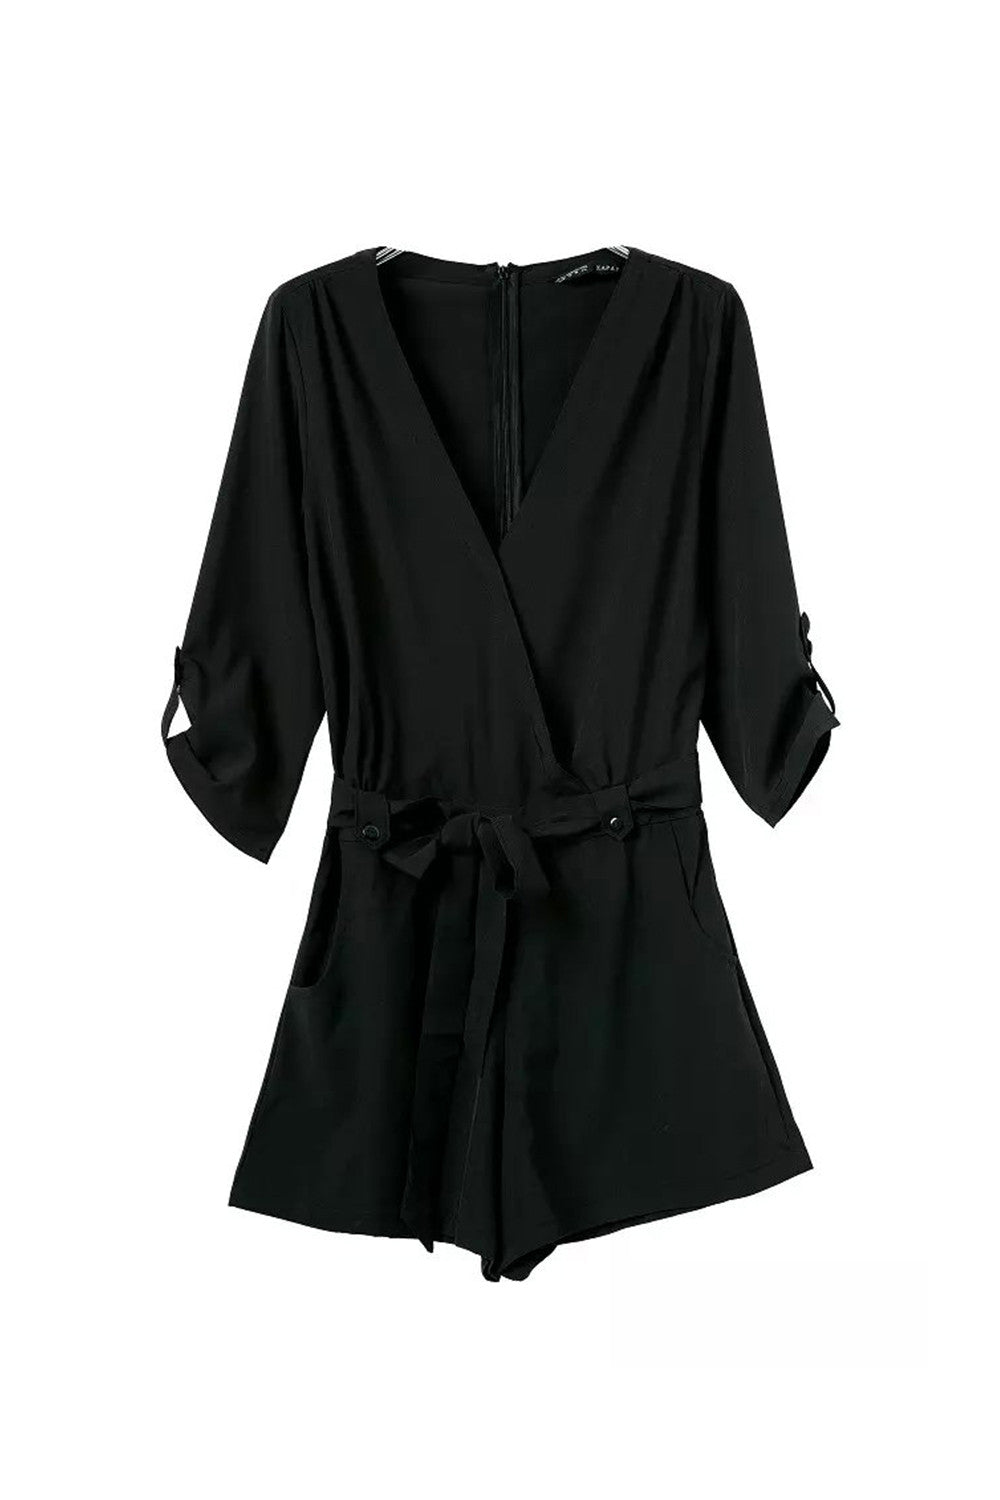 'Mary' Black Criss Crop Wrap Front Playsuit Romper - Goodnight Macaroon